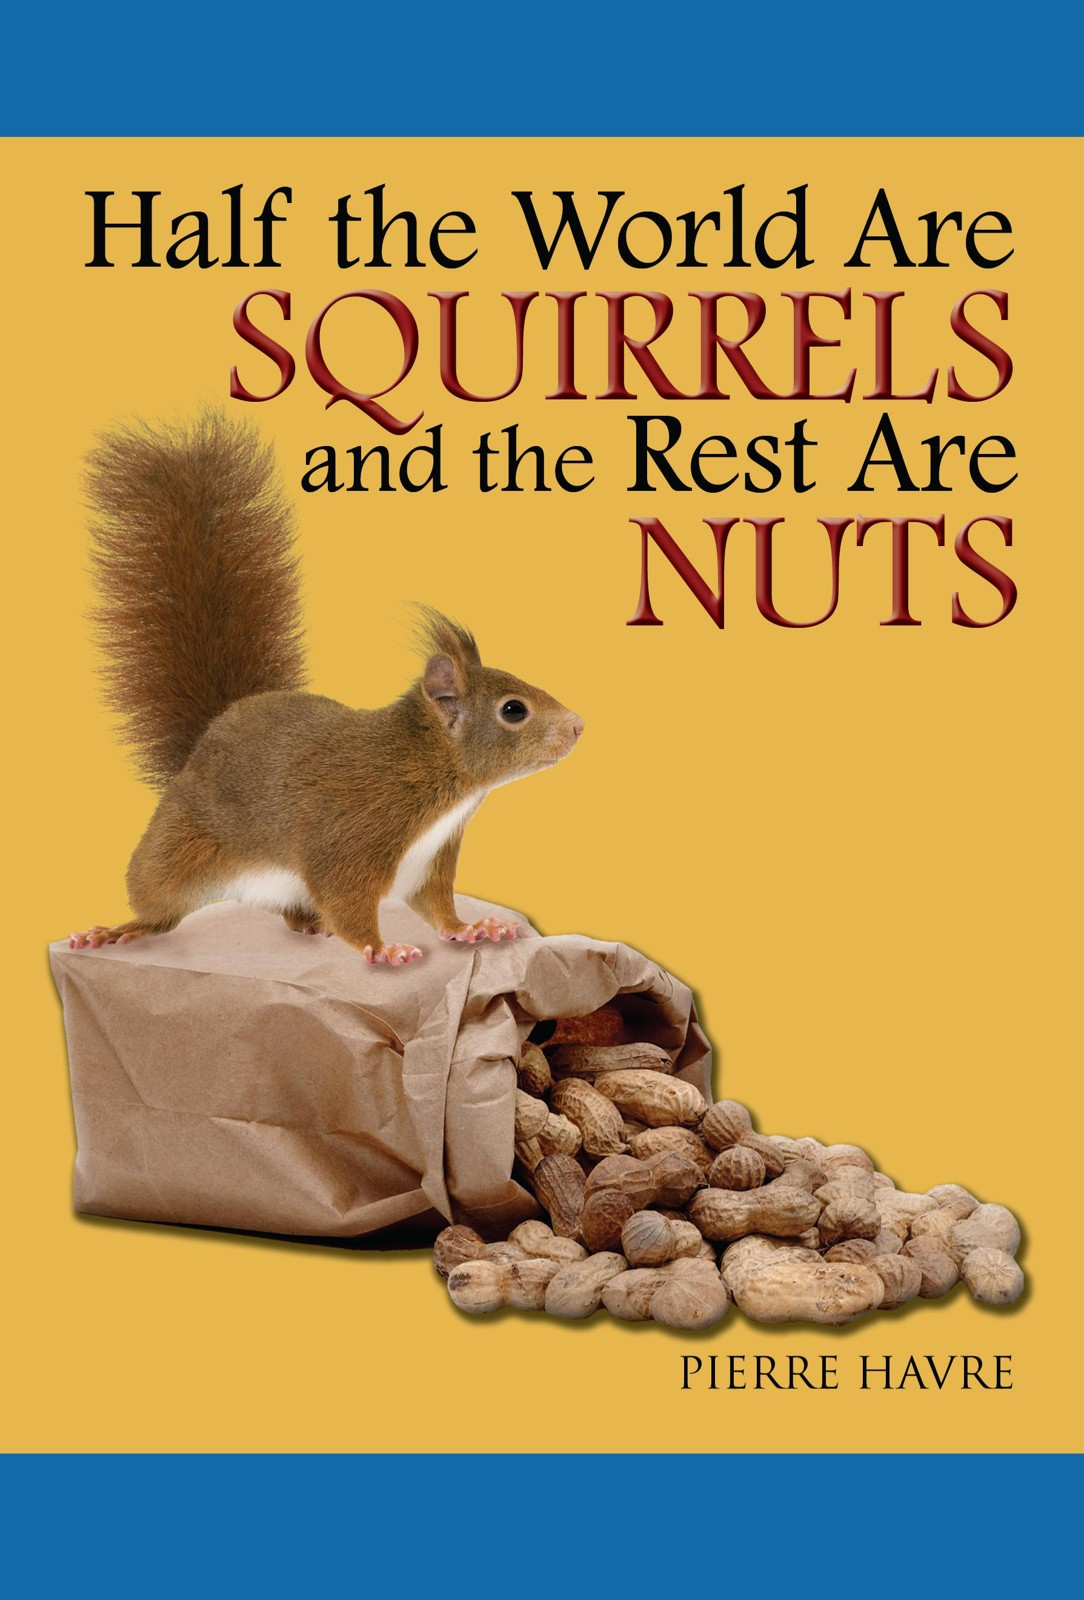 Half The World are Squirrels and the Rest are Nuts